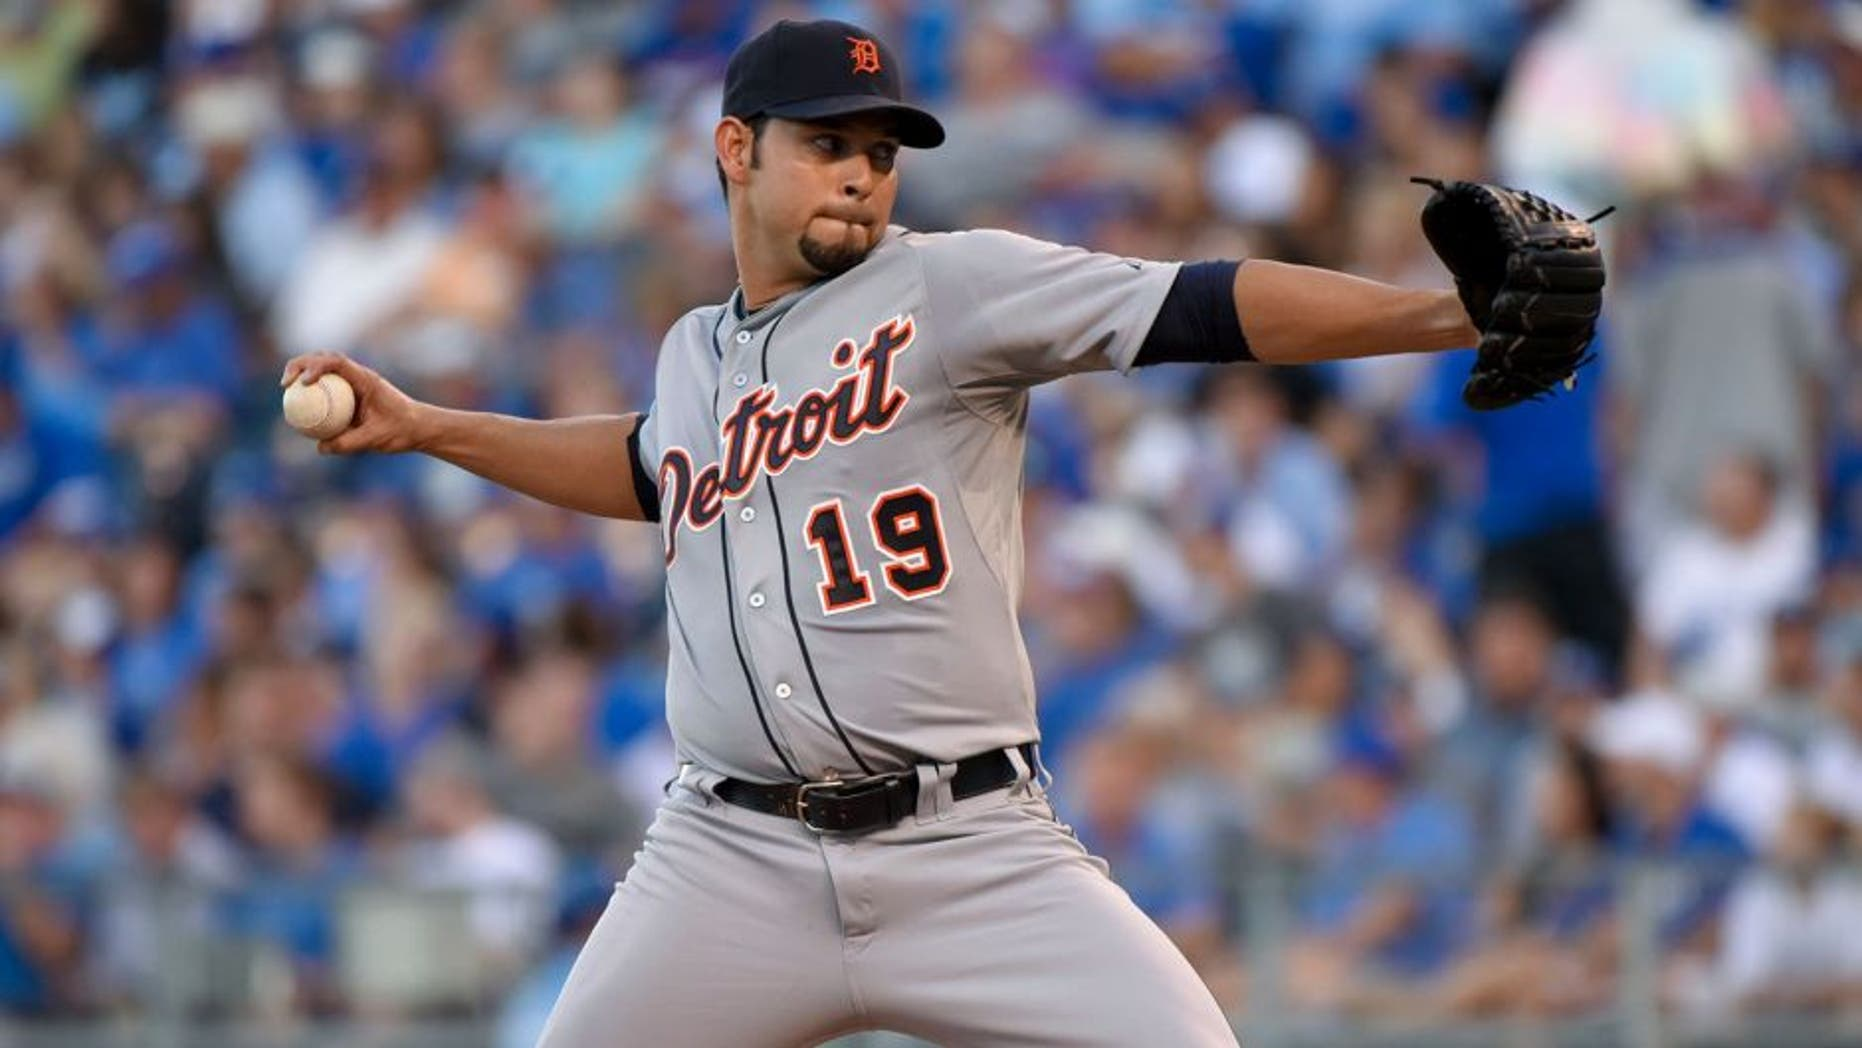 KANSAS CITY, MO - AUGUST 11: Anibal Sanchez #19 of the Detroit Tigers throws against the Kansas City Royals at Kauffman Stadium on August 11, 2015 in Kansas City, Missouri. (Photo by Ed Zurga/Getty Images)